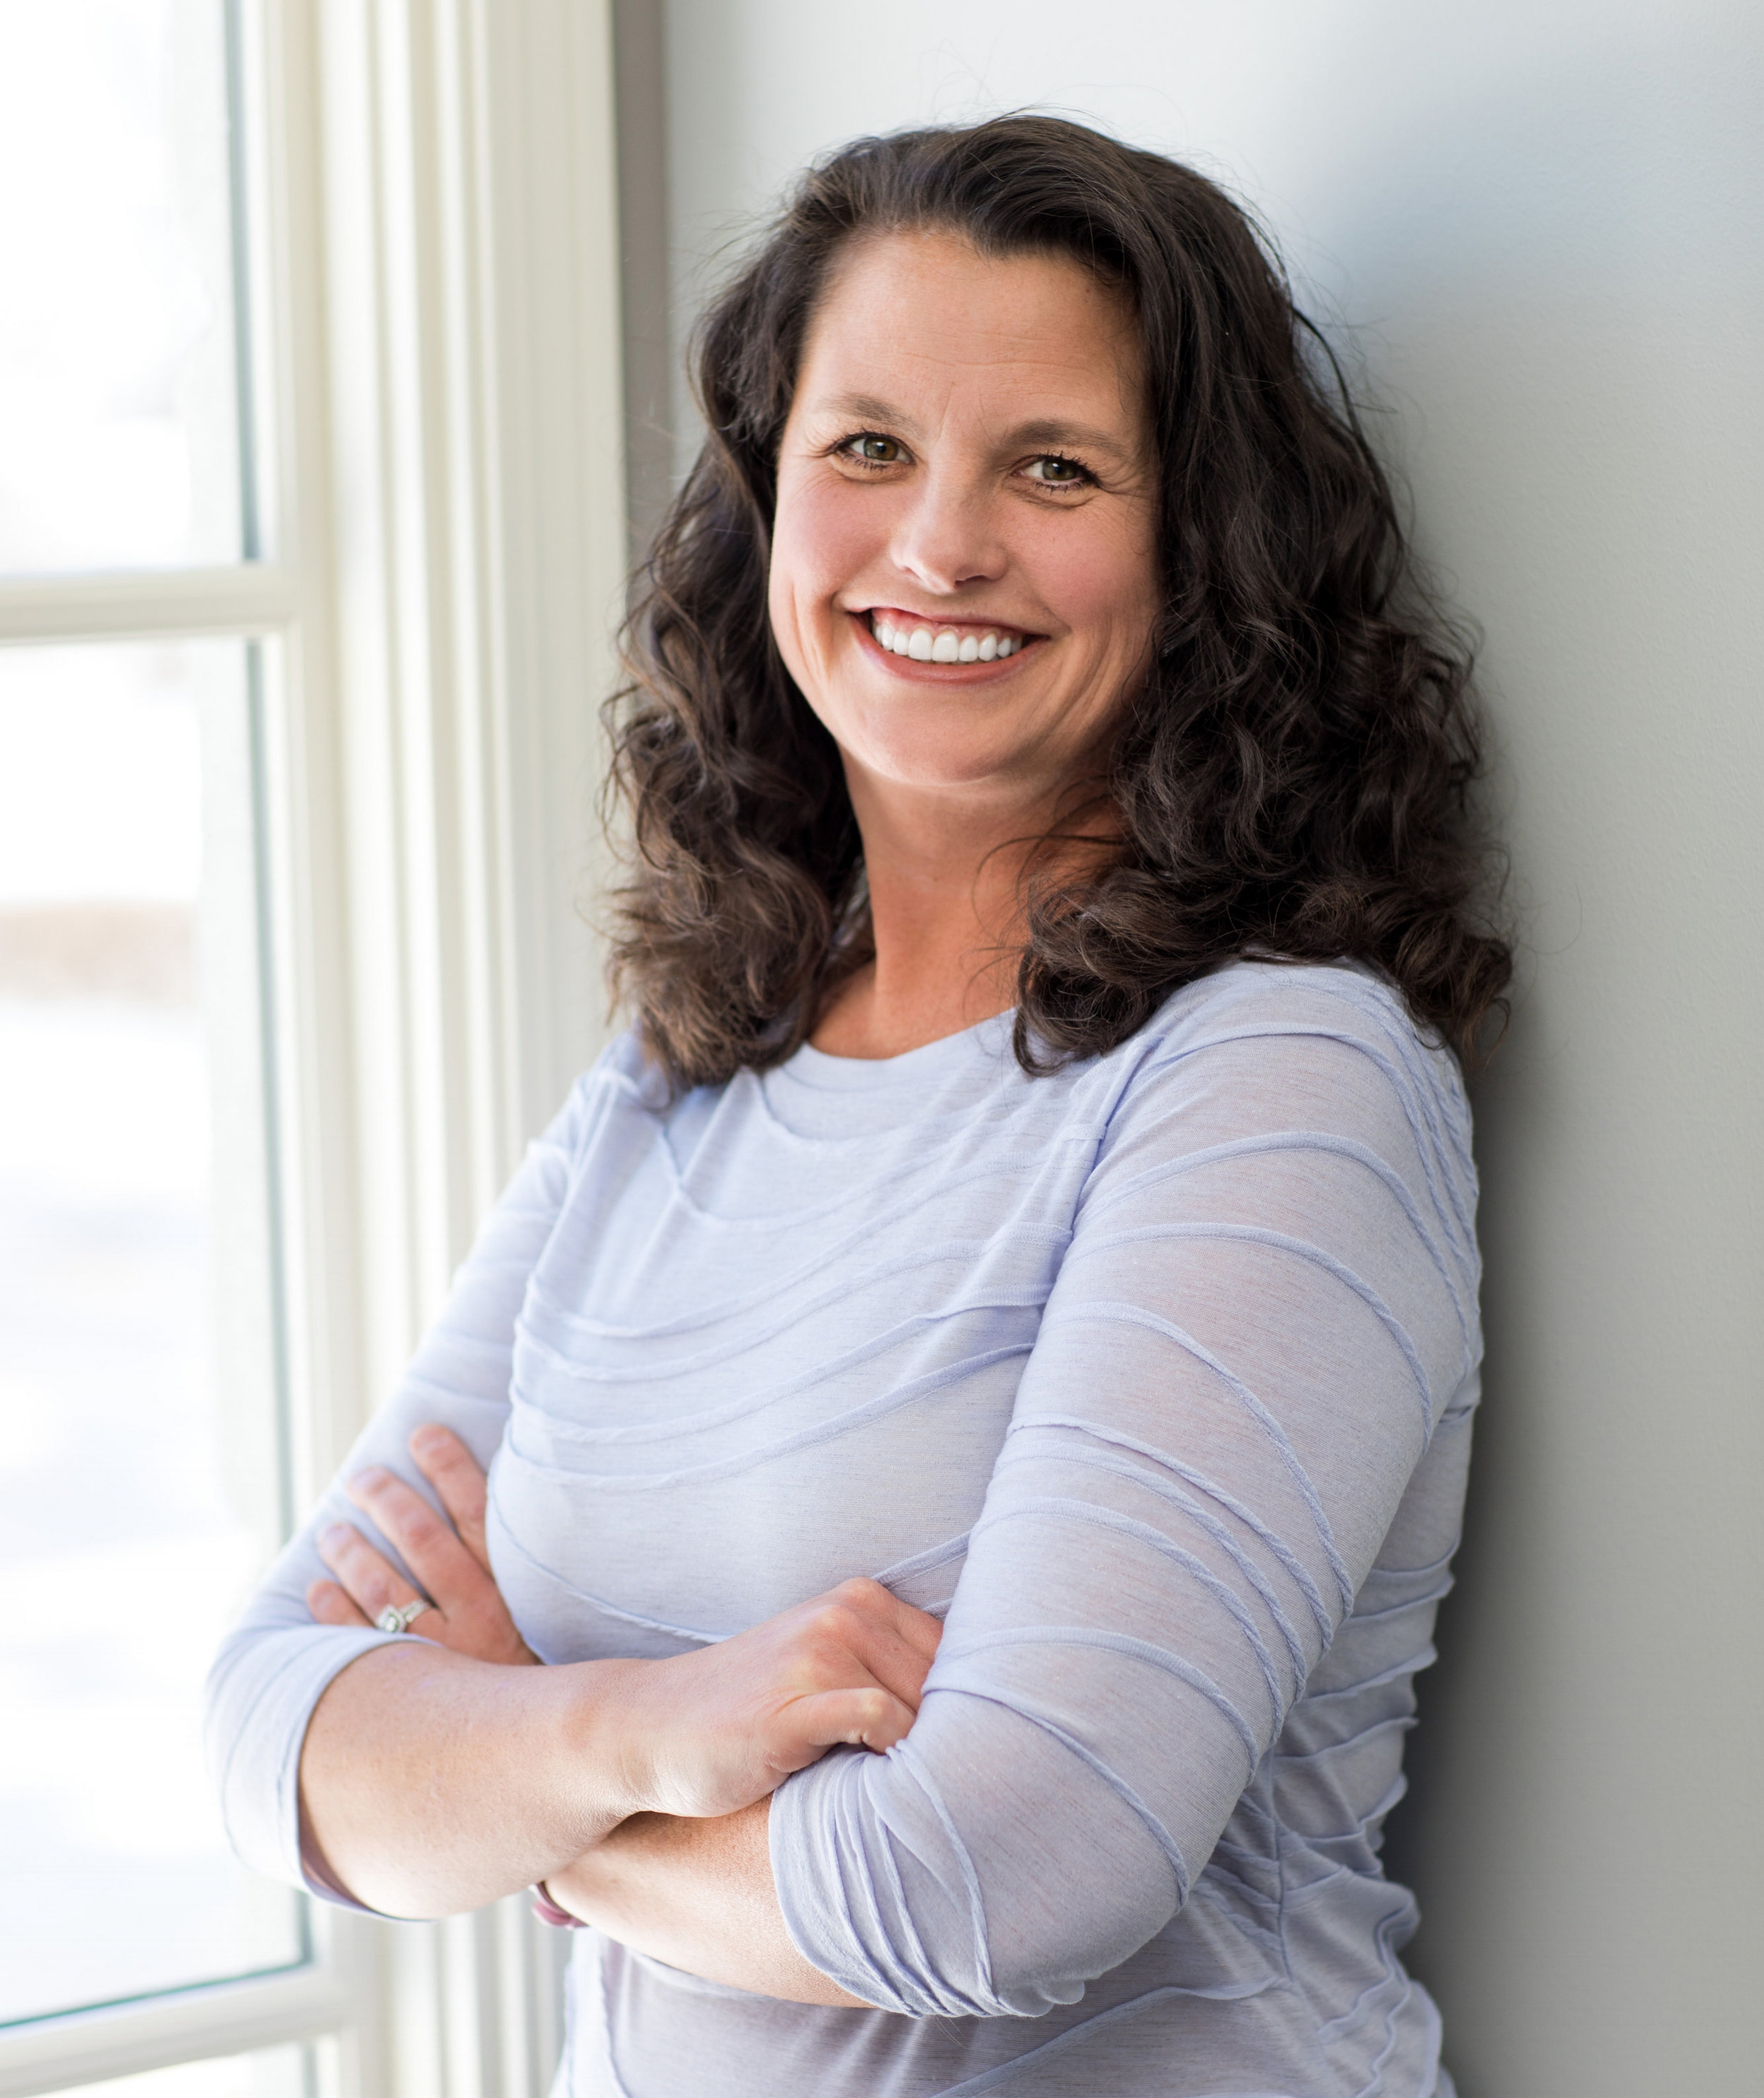 Andrea Zook, IBCLC , CLC, BC, PCD, Lactation Consultant, Postpartum Doula & Founder of A to Z Postpartum Services